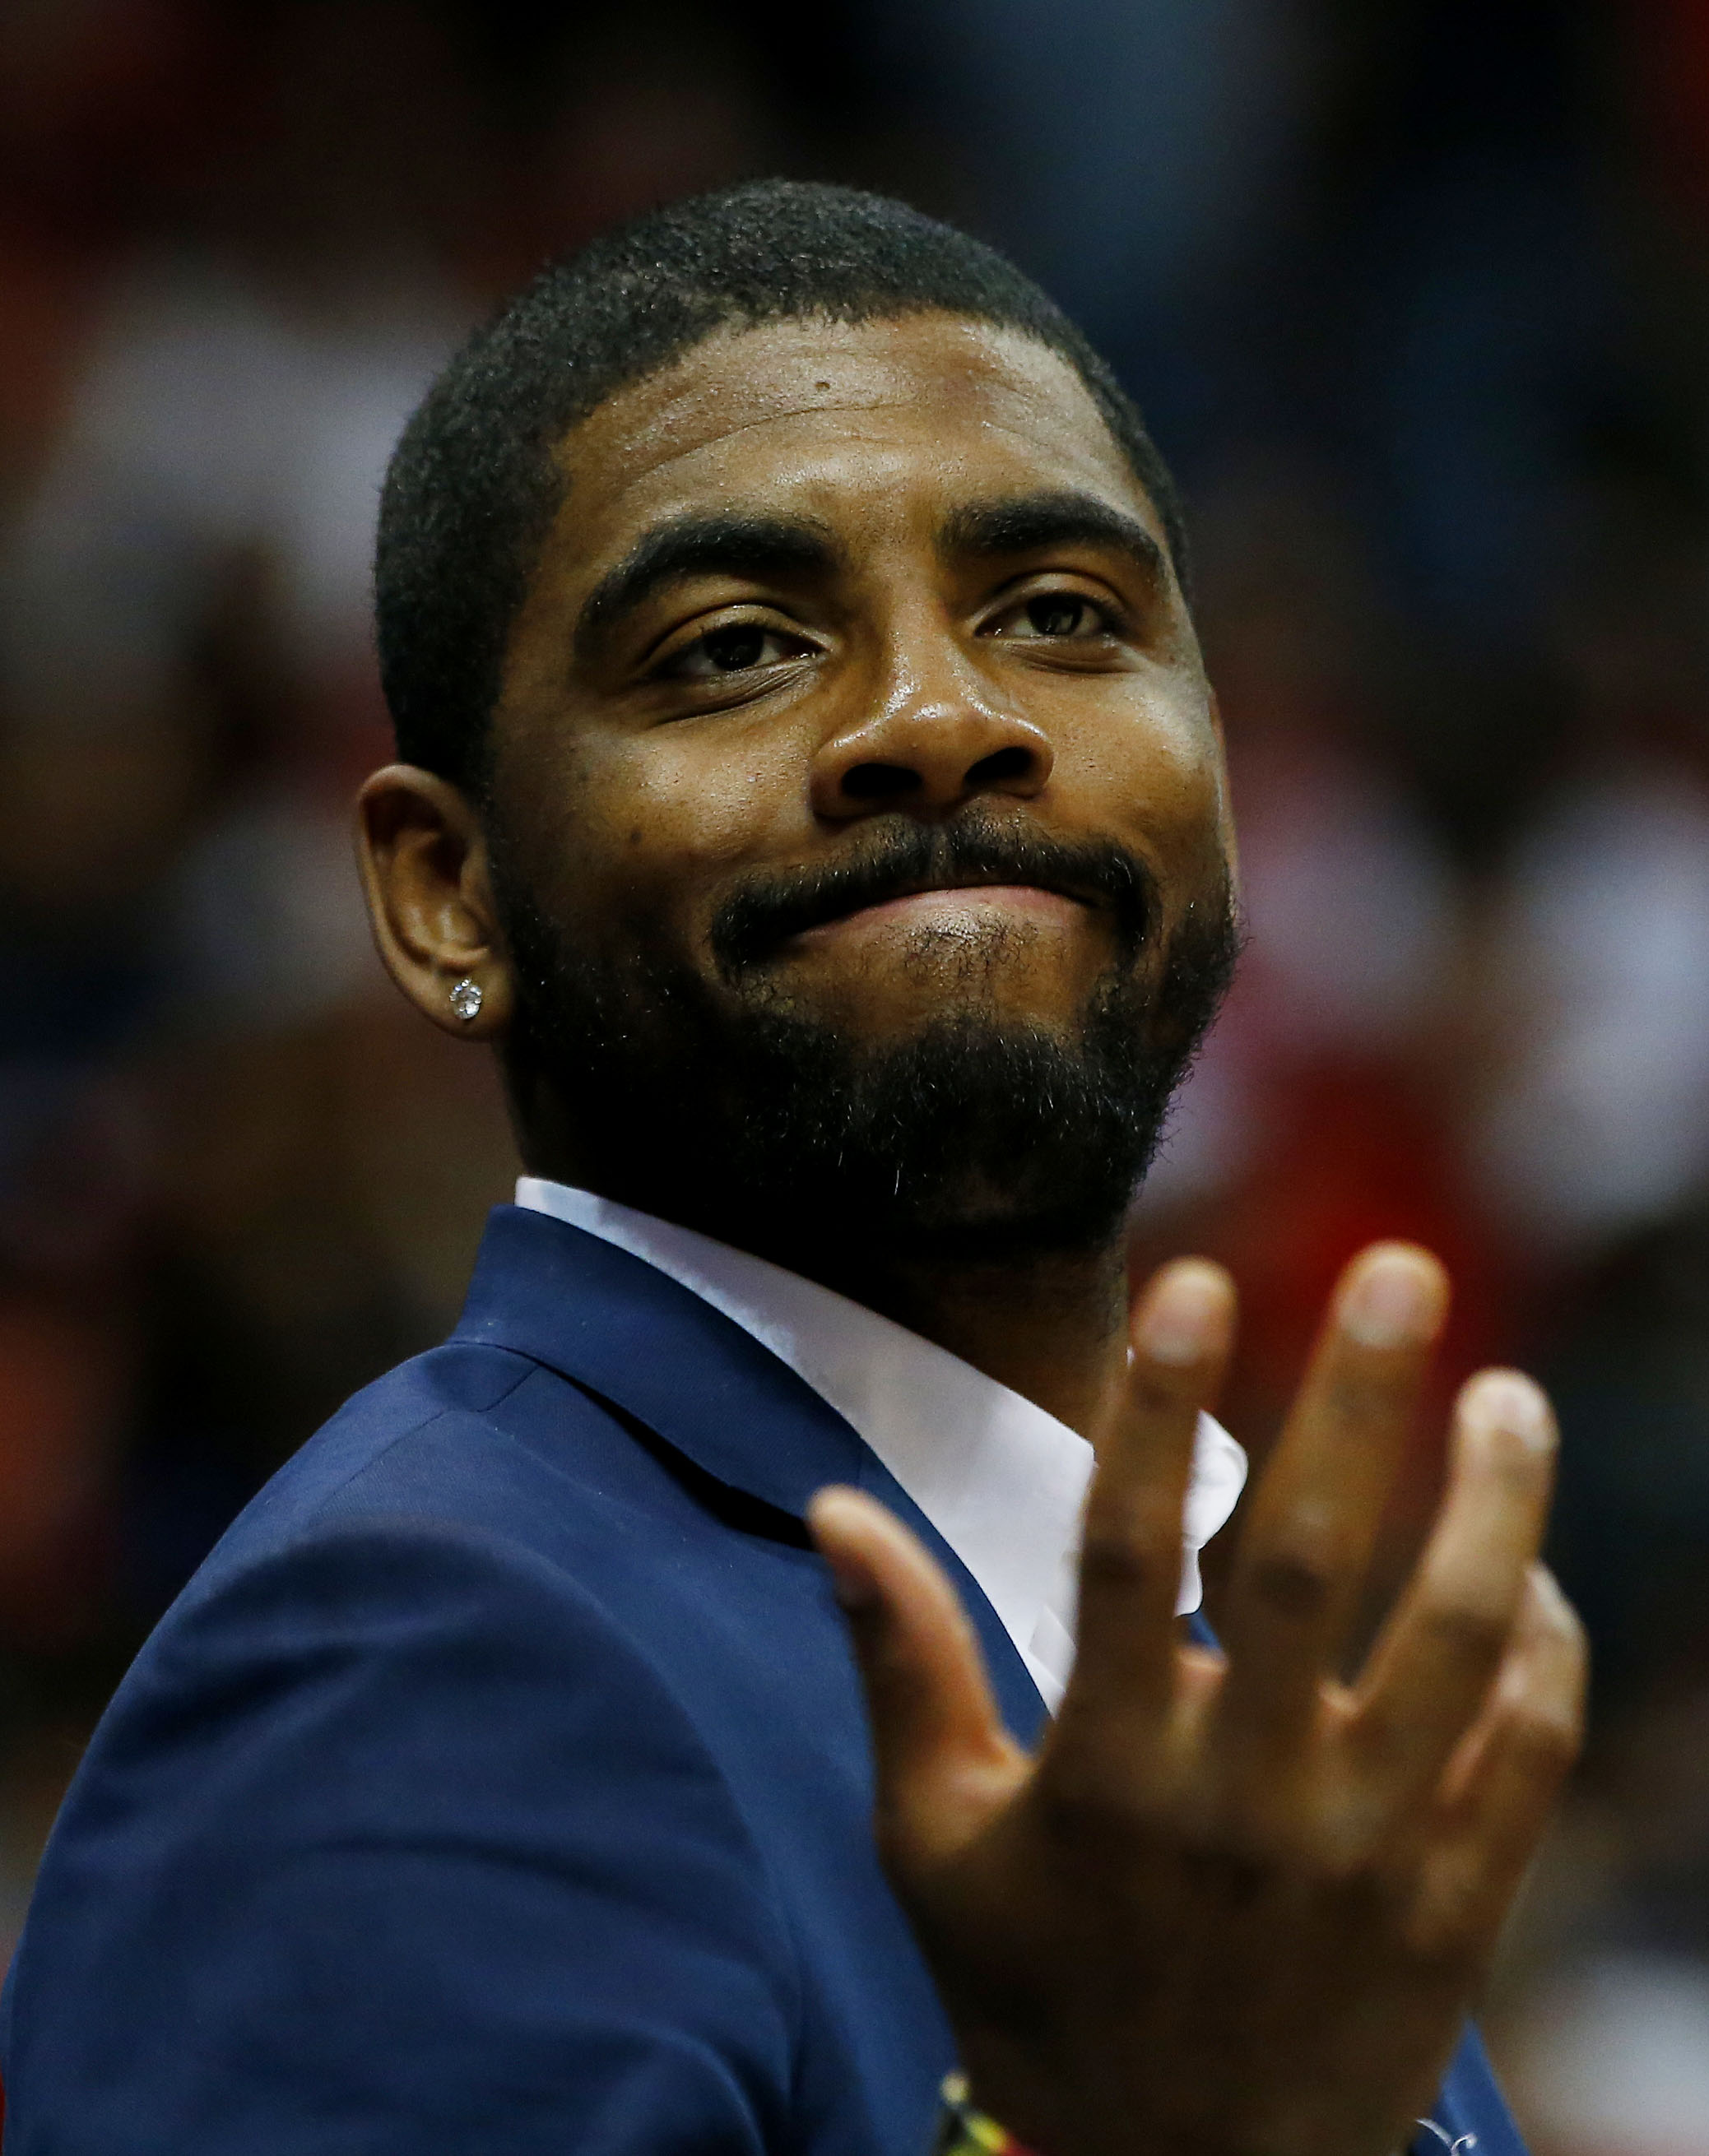 ATLANTA, GA - MAY 22:  Kyrie Irving #2 of the Cleveland Cavaliers reacts on the bench after Tristan Thompson #13 dunked against the Atlanta Hawks in the fourth quarter during Game Two of the Eastern Conference Finals of the 2015 NBA Playoffs at Philips Ar